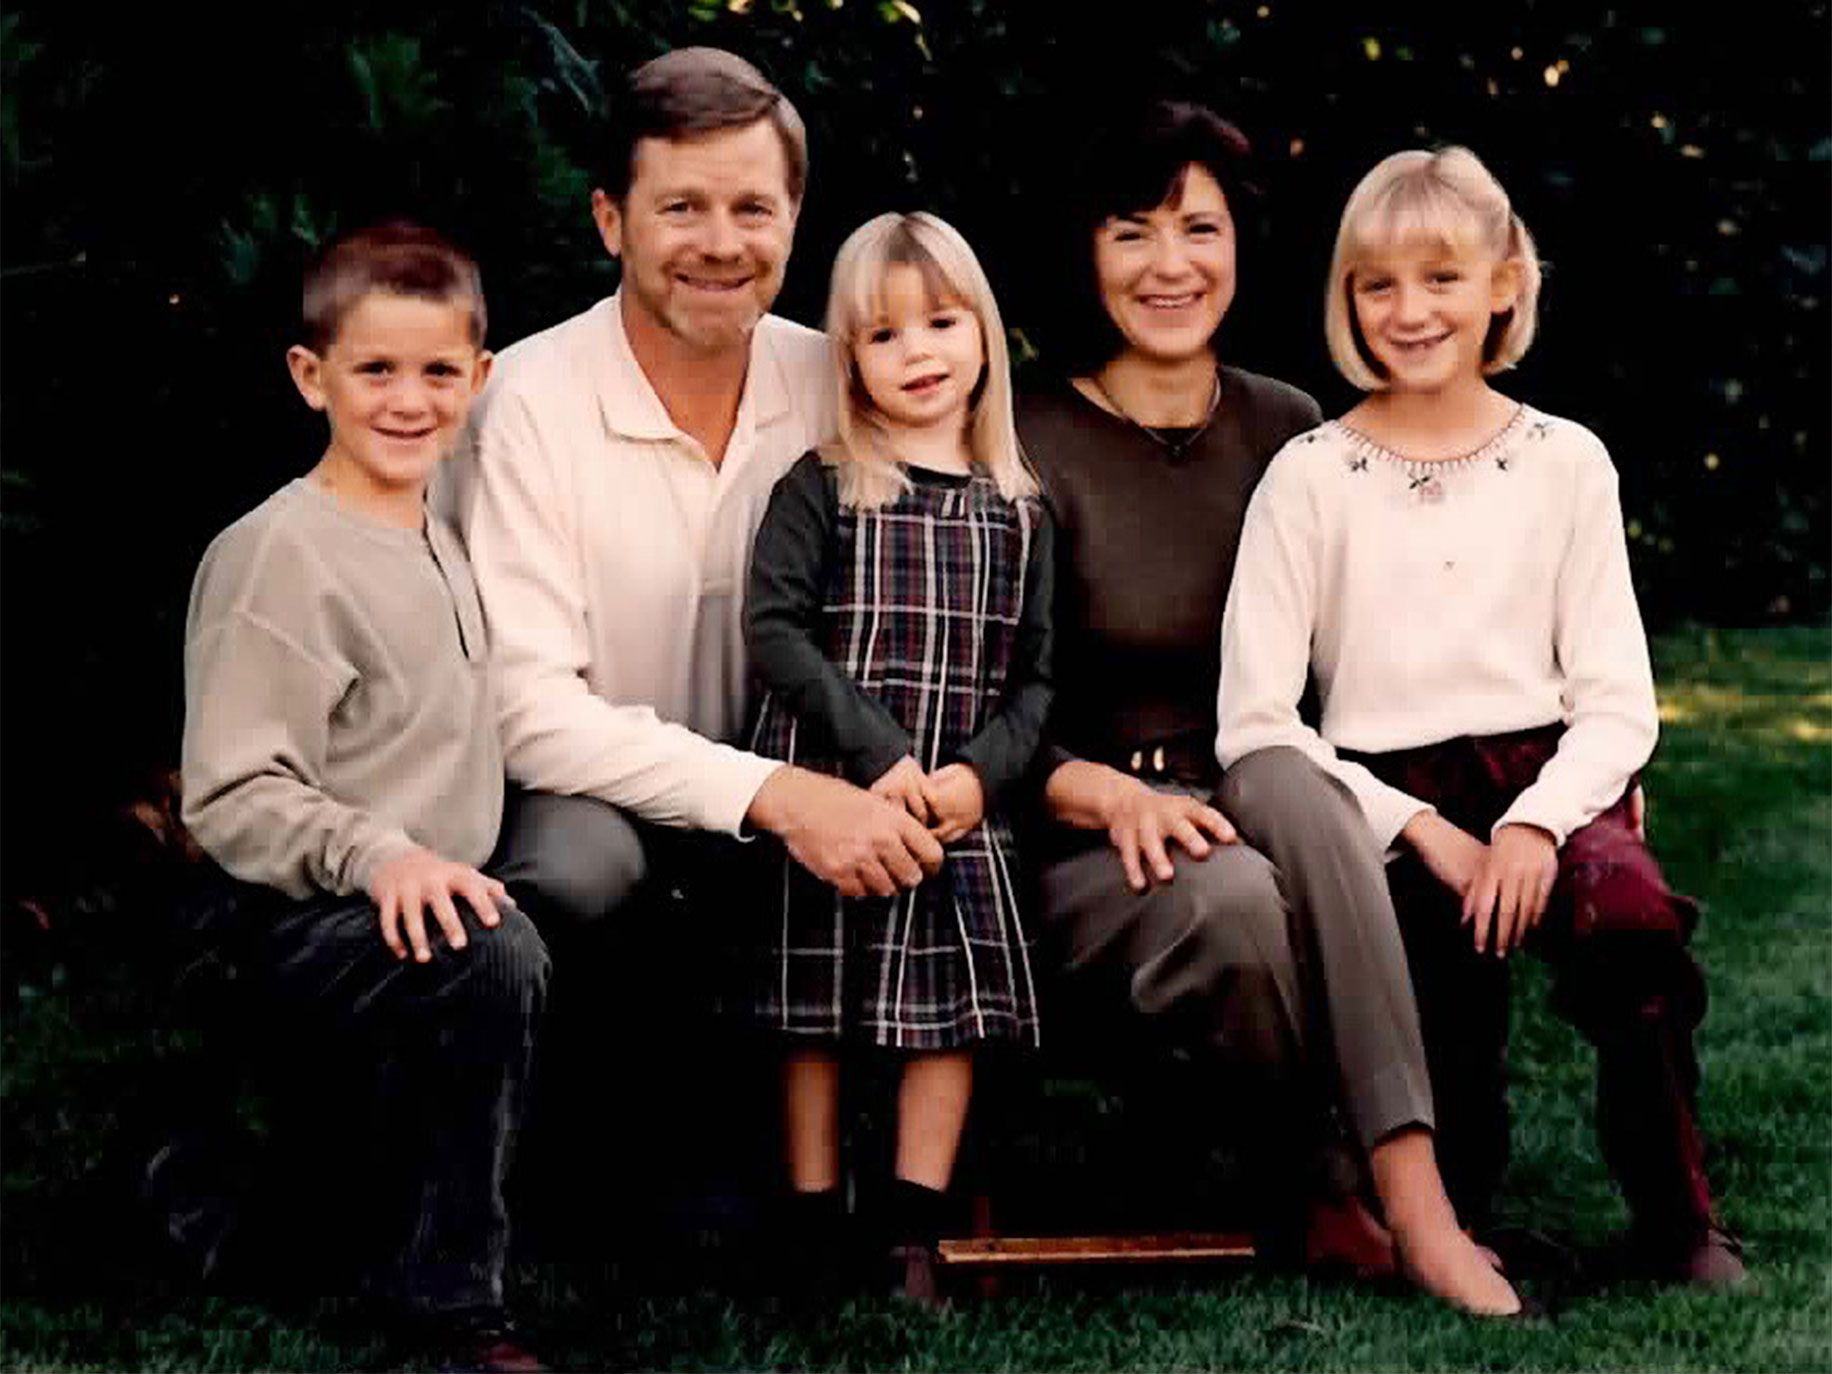 MJ Elmore with her family, Christmas 1996. Elmore was the only IVP partner with a working spouse and three children.